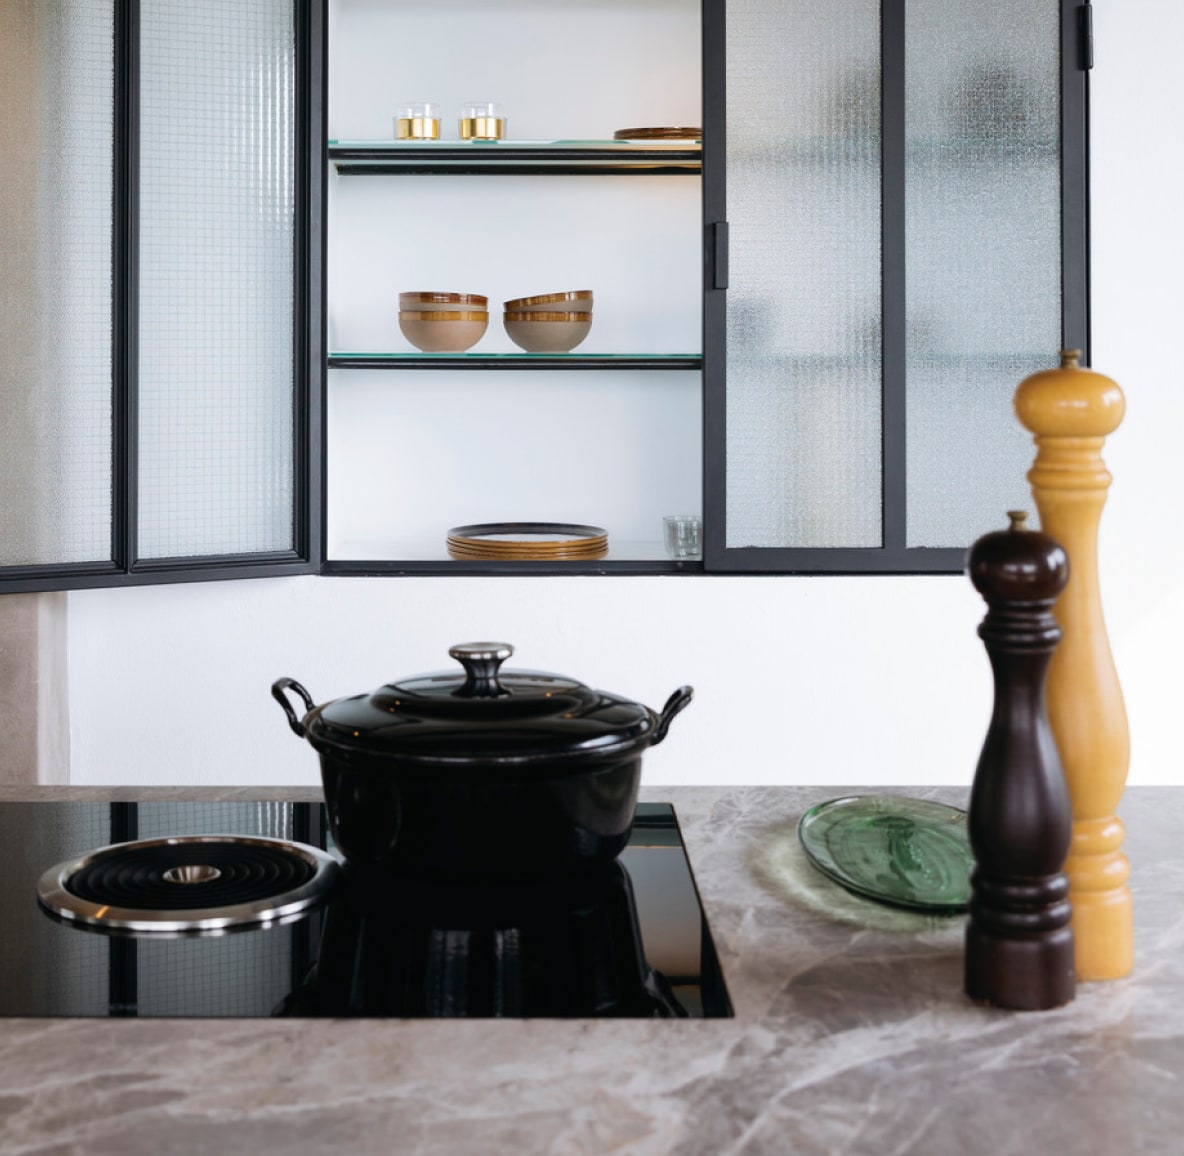 Kitchen countertop with ceramic cookware and large salt and pepper shakers in front of an open glass cabinet filled with ceramic dishes